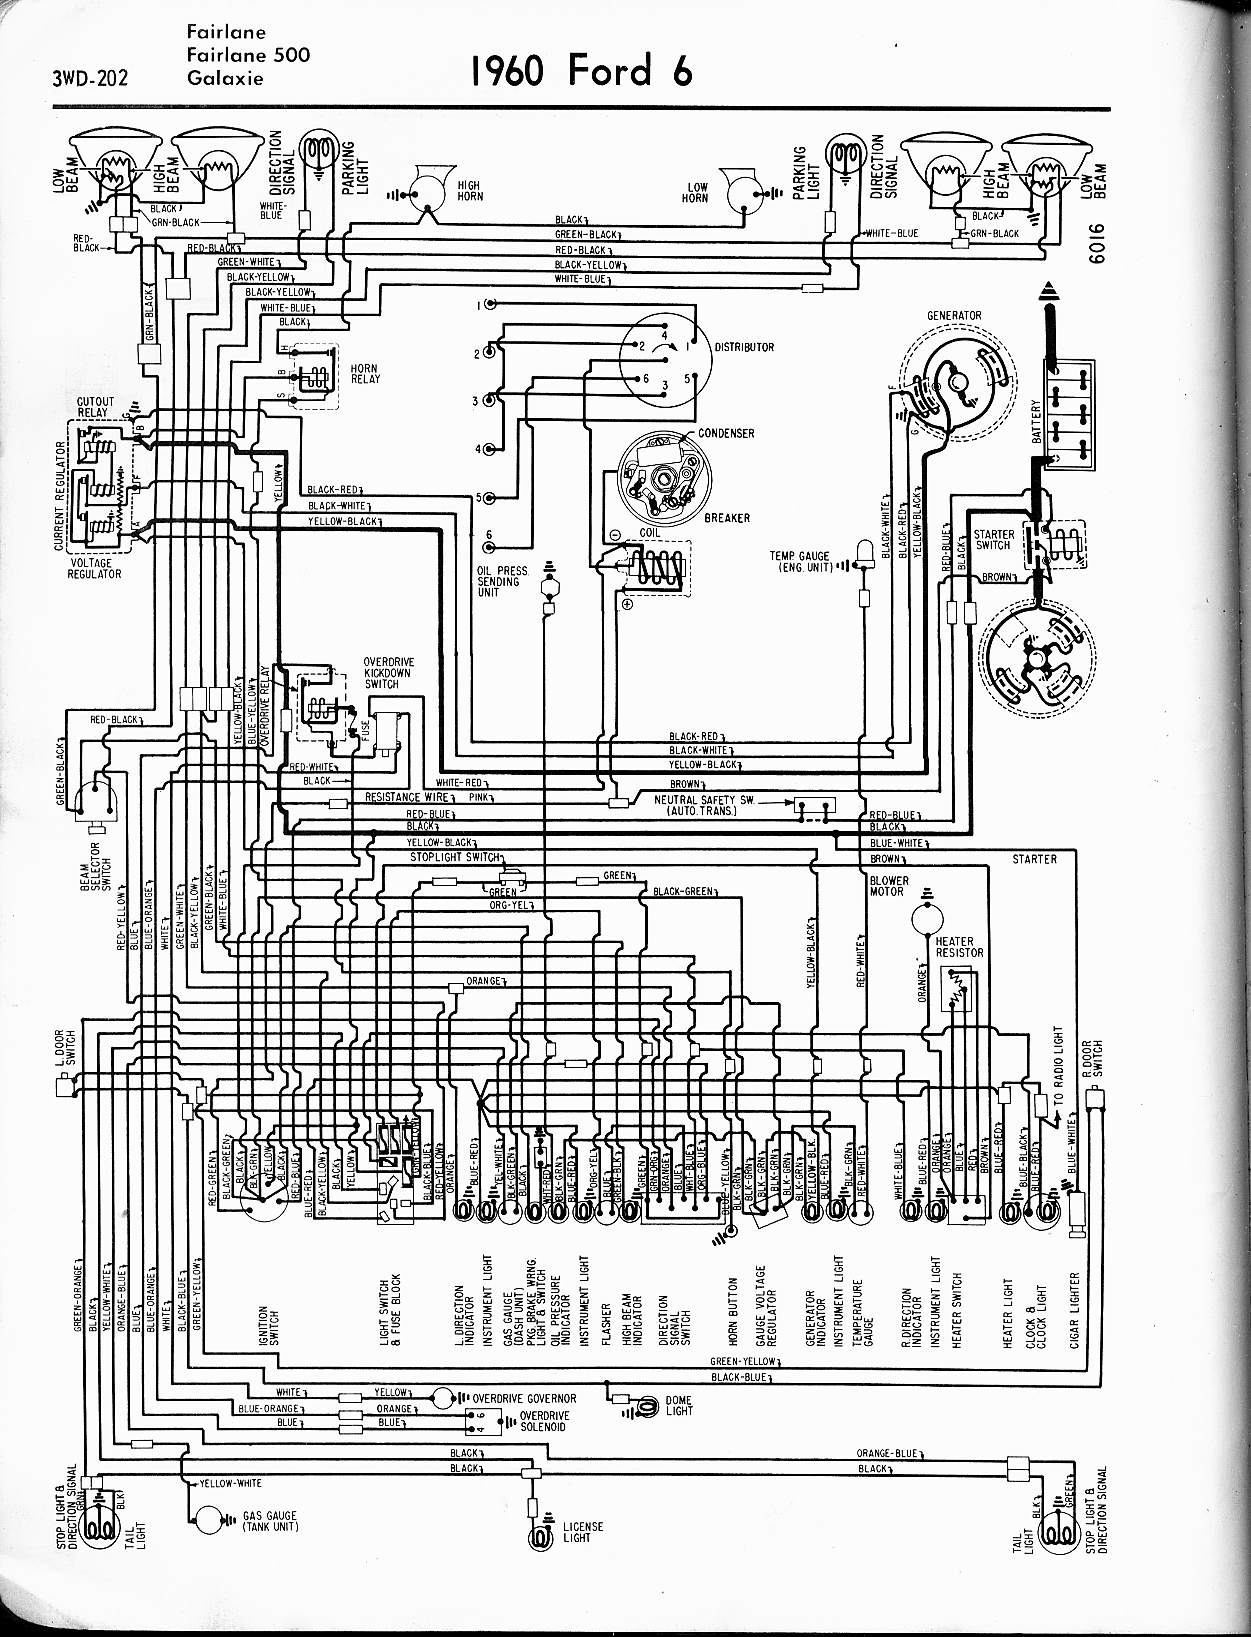 Ford Electrical Wiring Diagrams Box 1996 460 Engine Diagram 57 65 Fiesta 1960 6 Cyl Fairlane 500